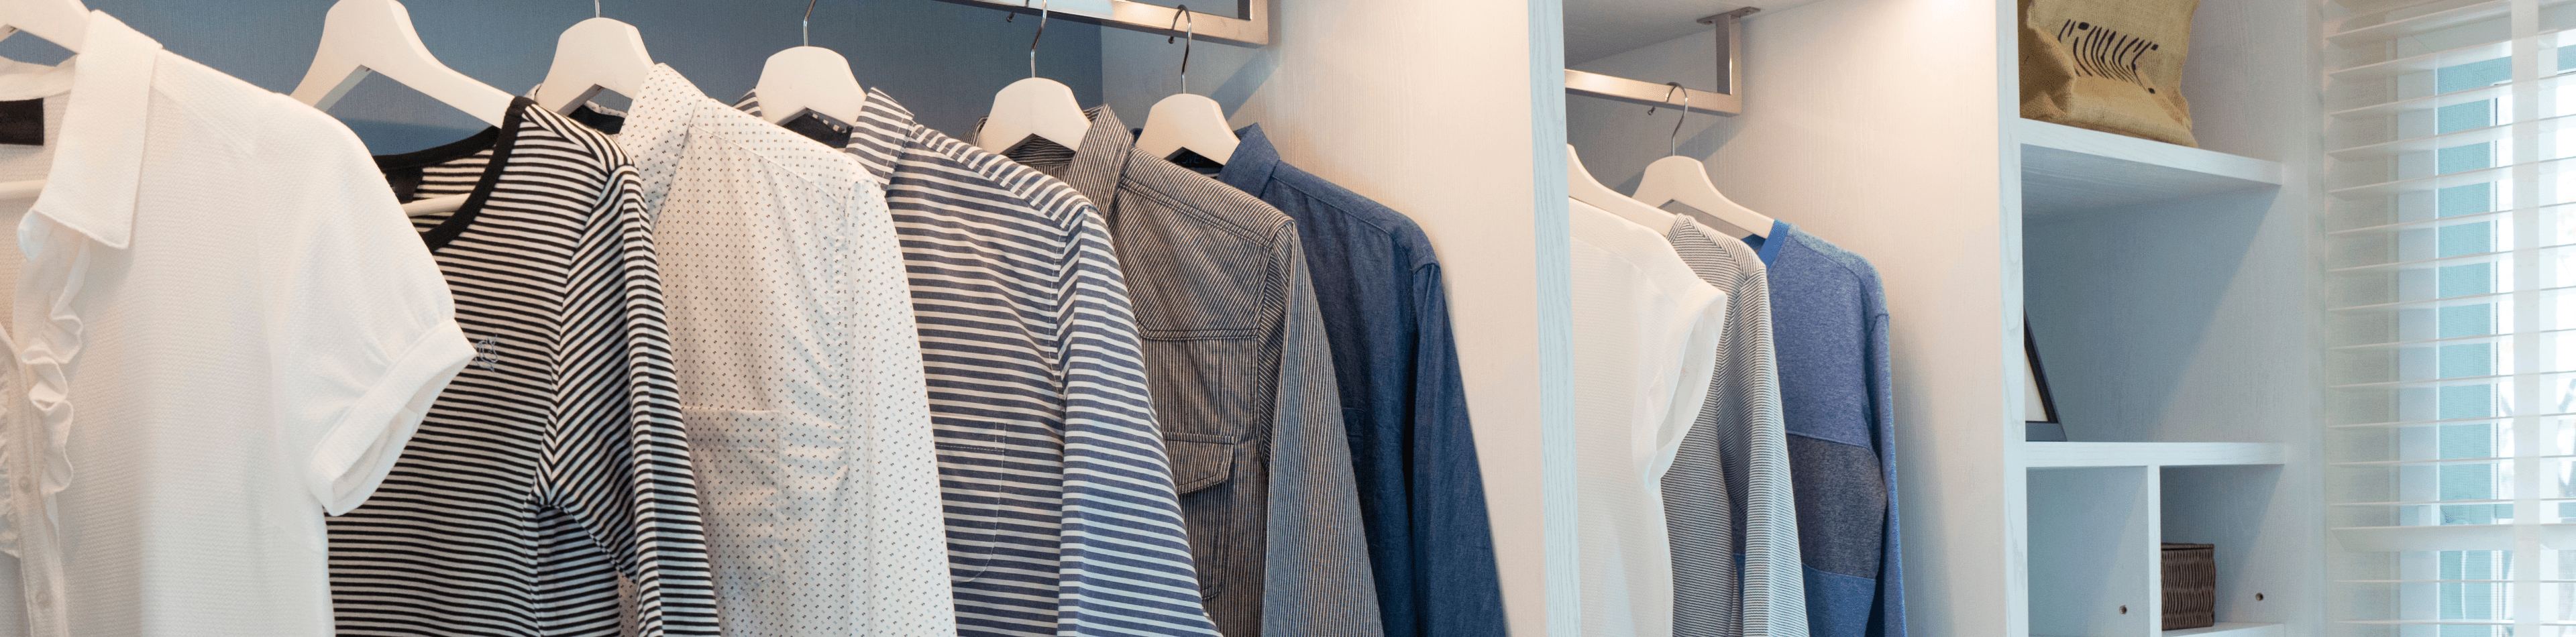 Custom closet solutions from Innovative Closet Designs in Wyckoff, New Jersey